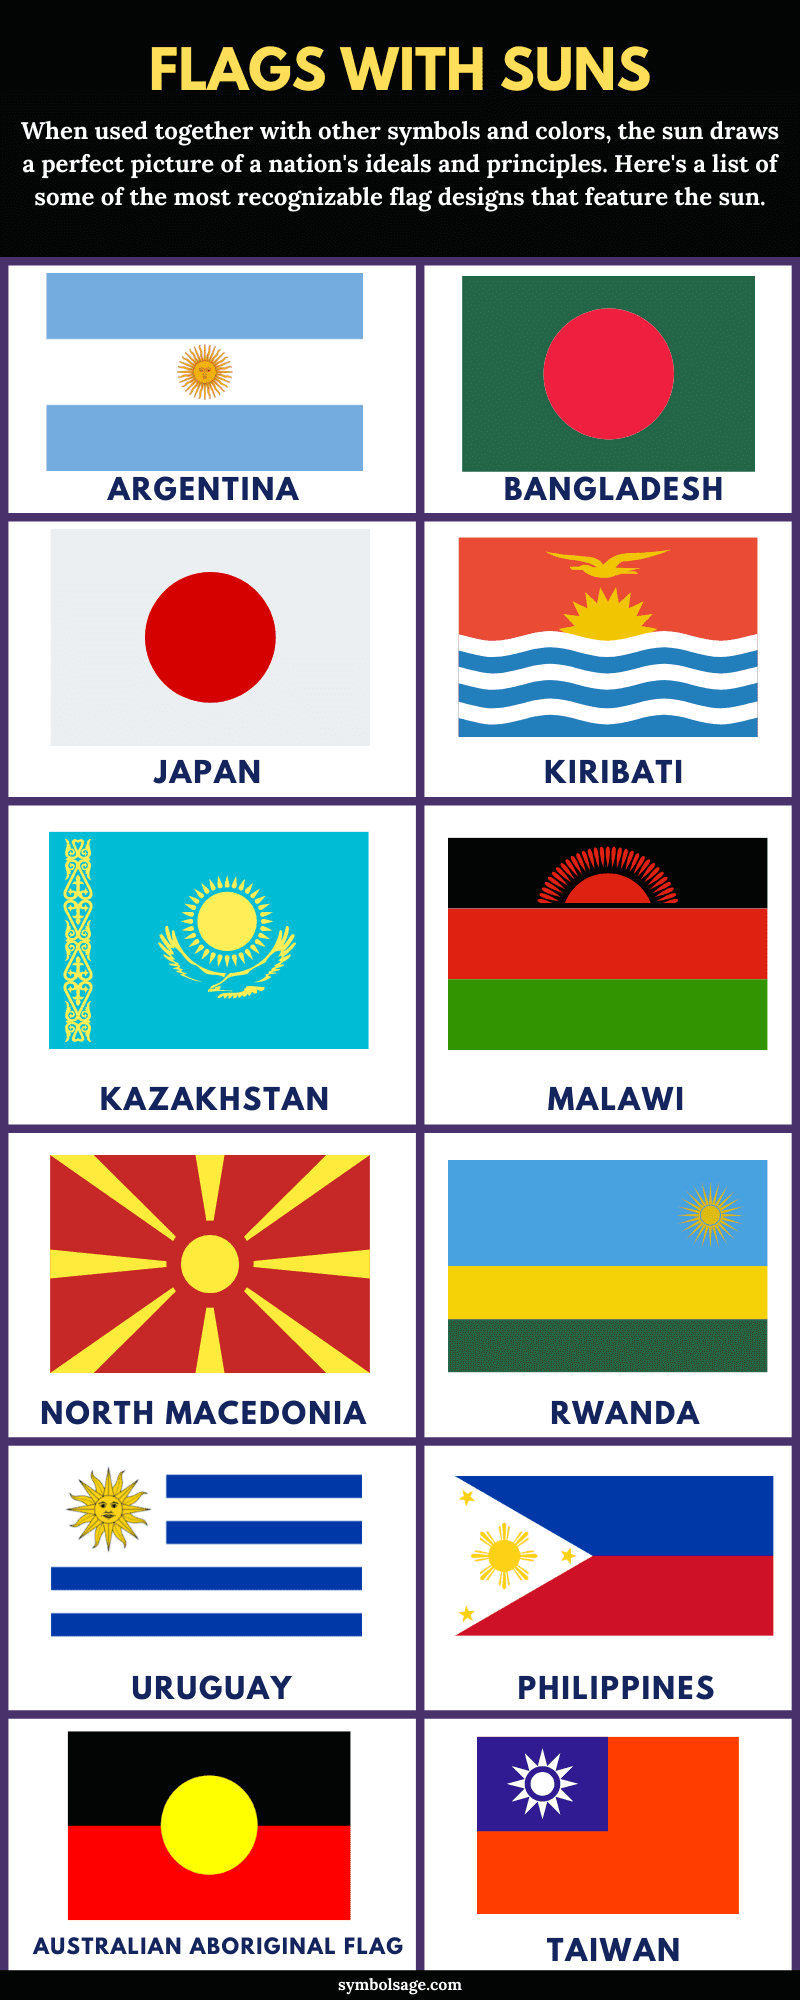 Flags with suns